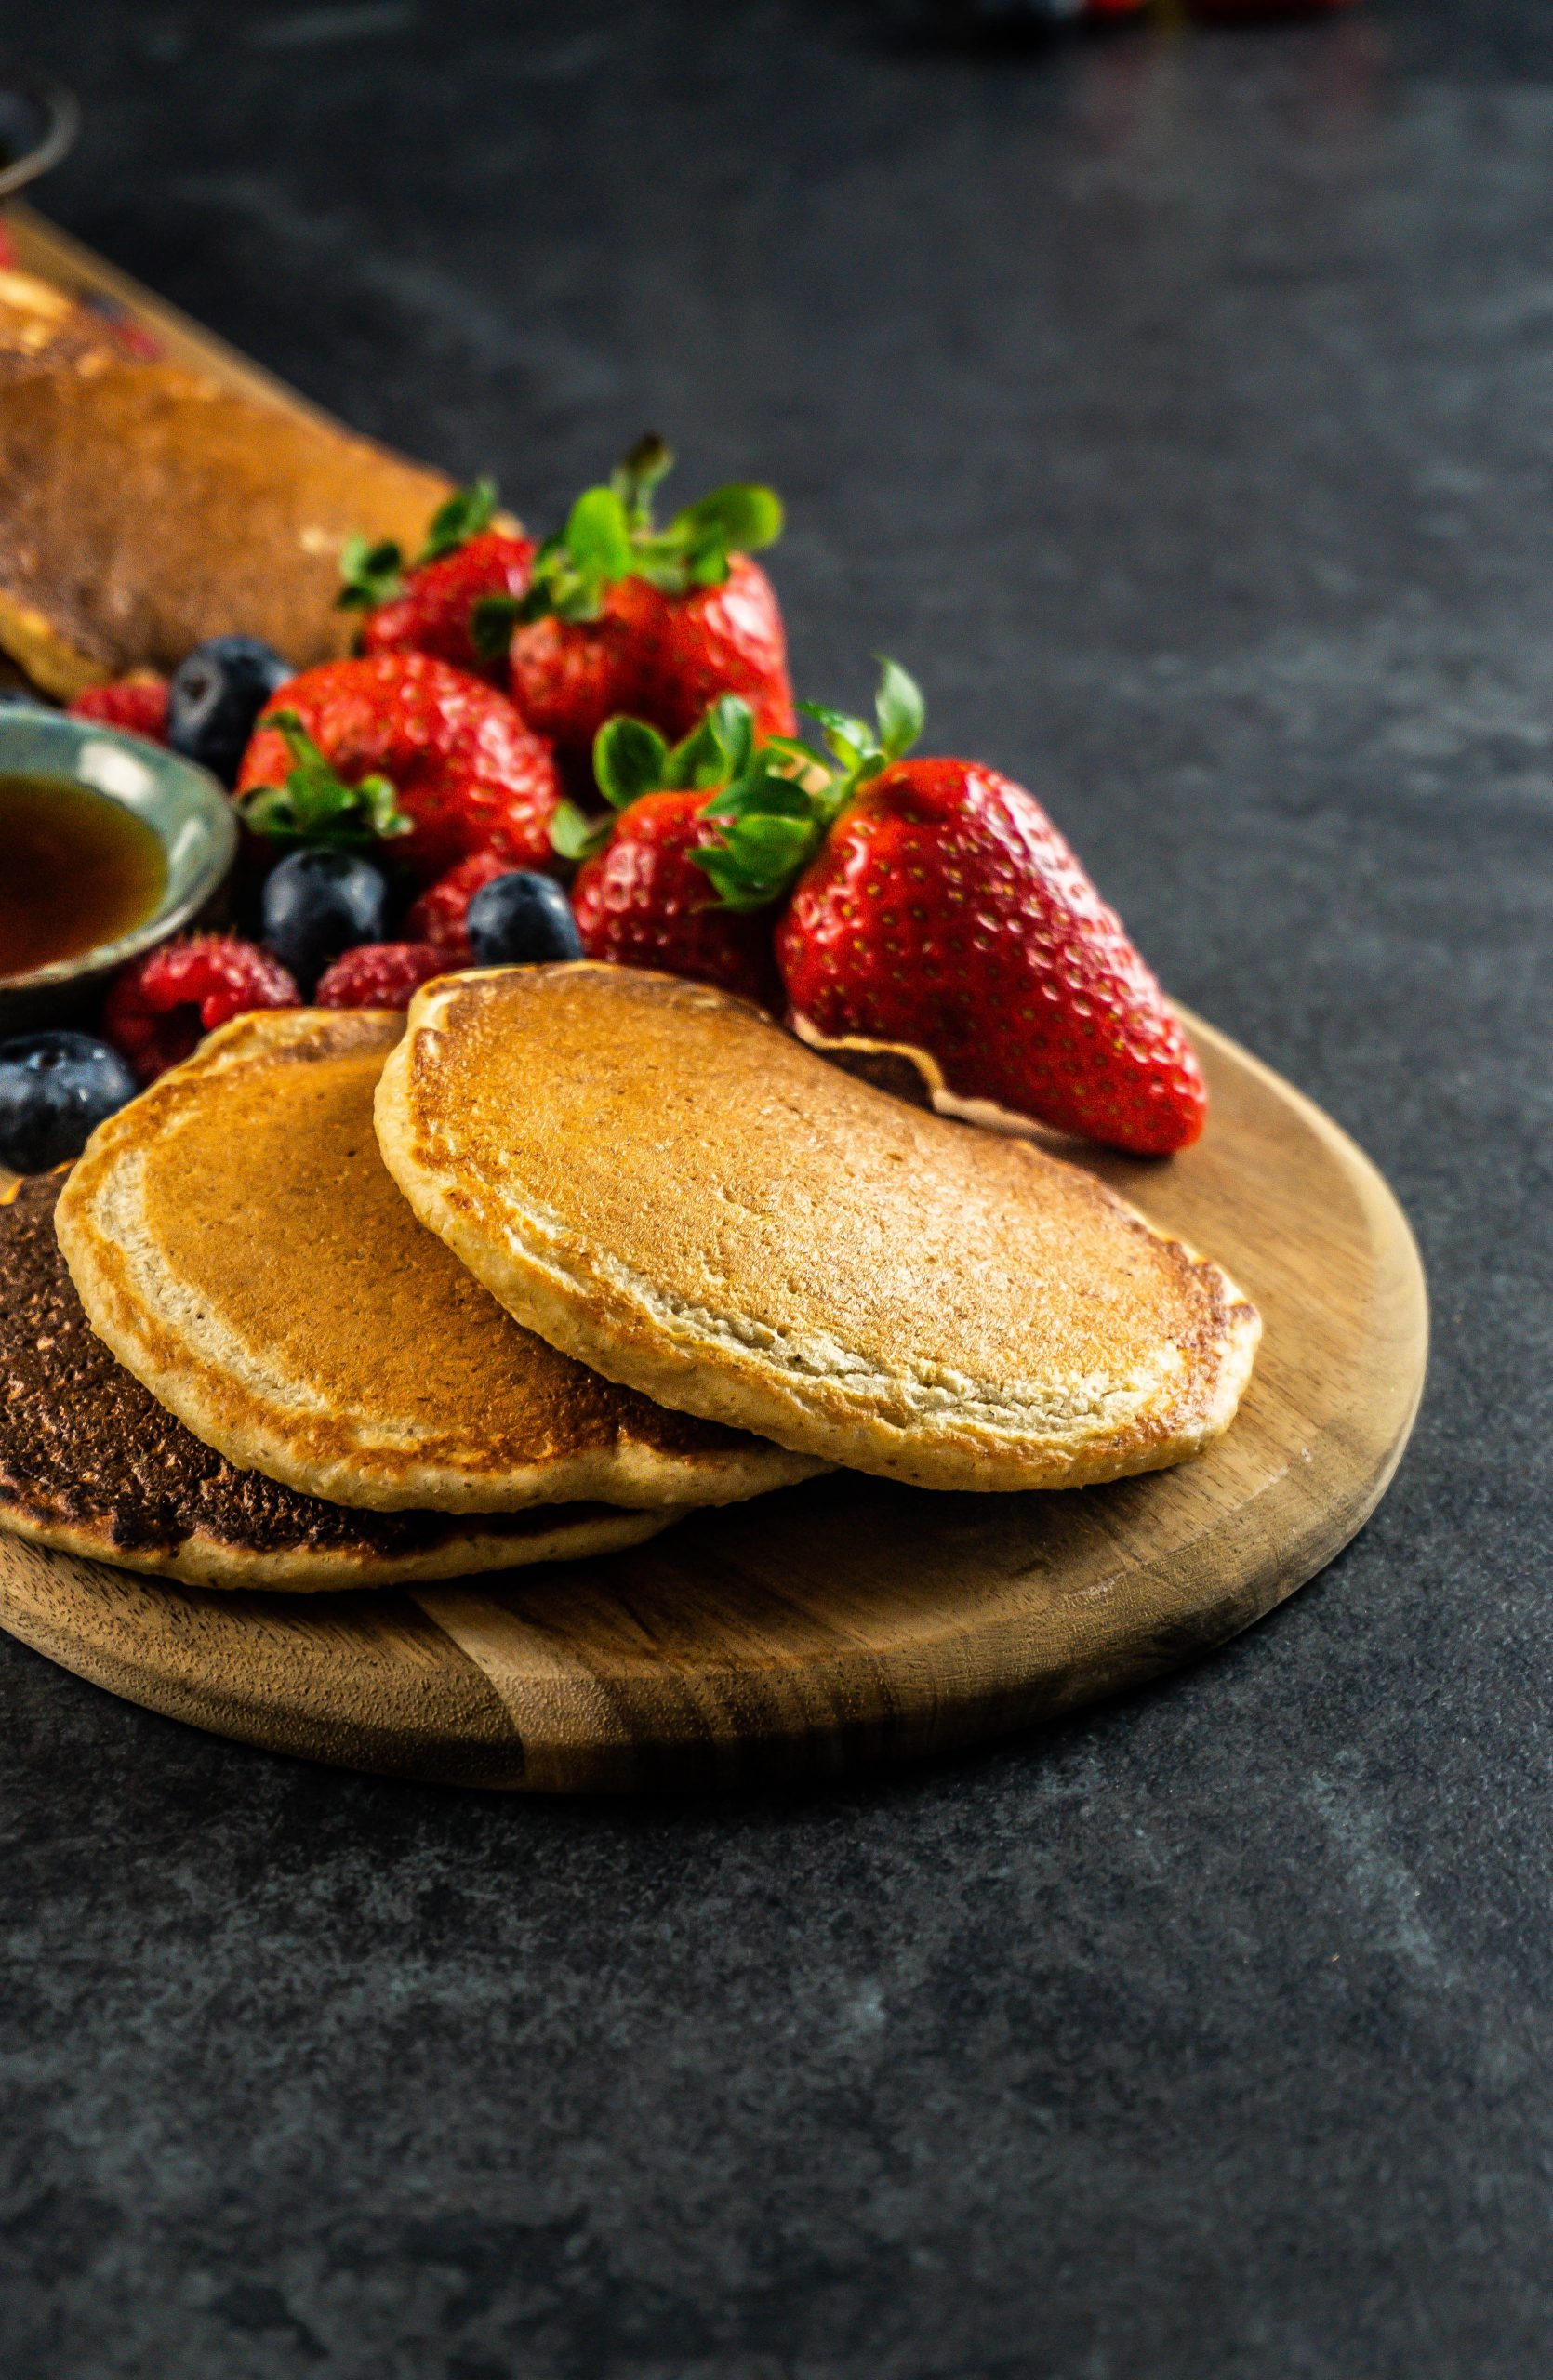 Fluffy Lemon Buttermilk Pancakes on a wooden board with different kinds of berries visible in the background and some maple syrup